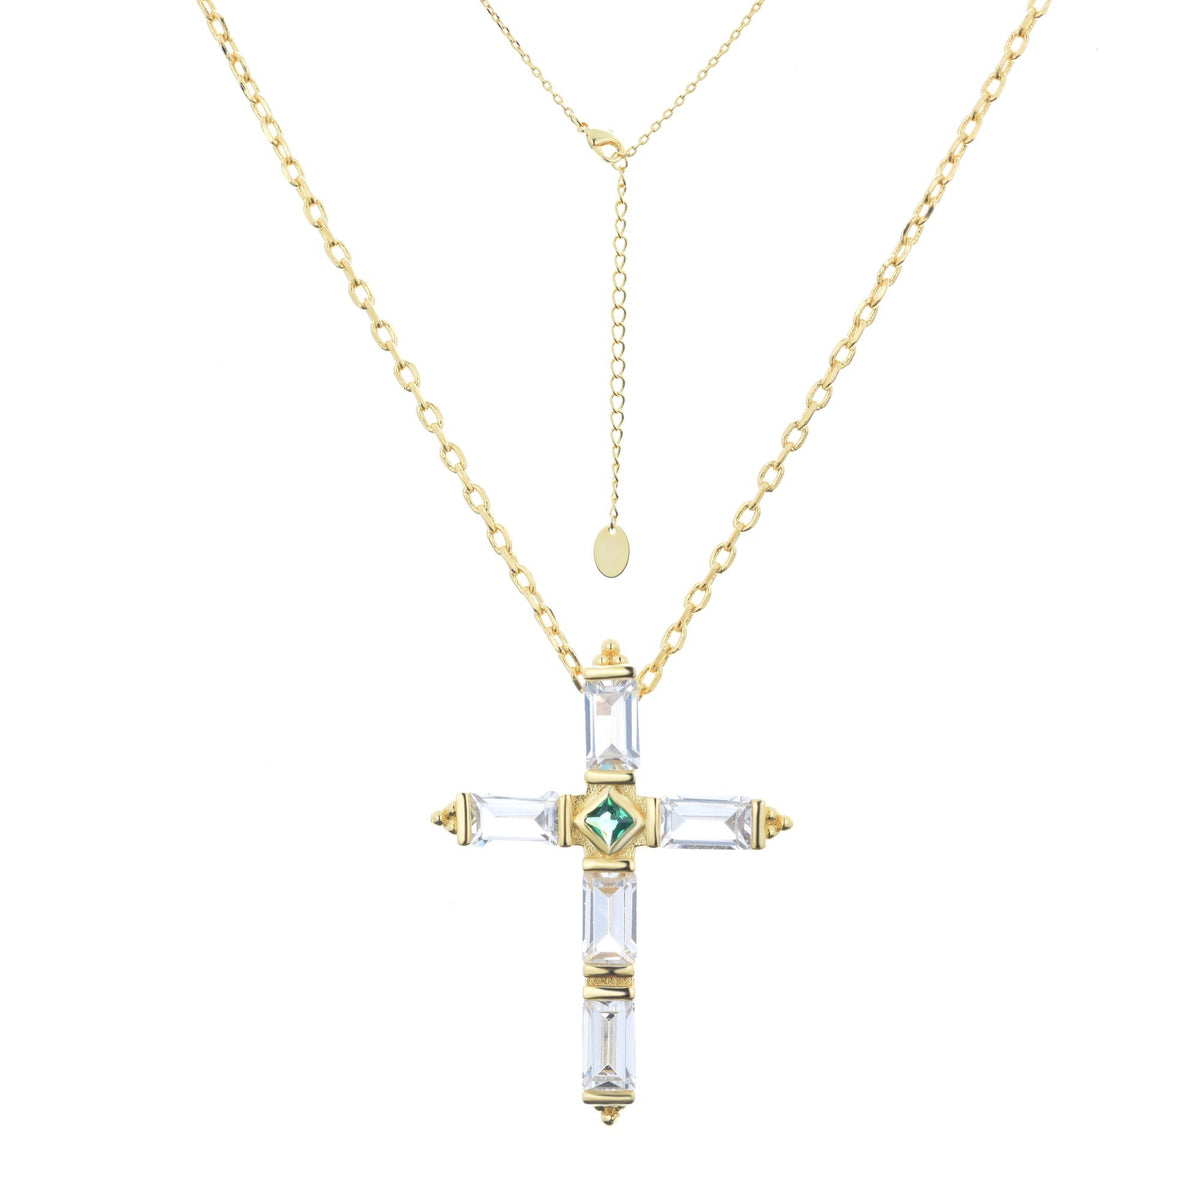 Ferentina | Cross Necklace | 925 Silver | White & Green CZ | 18K Gold Plated